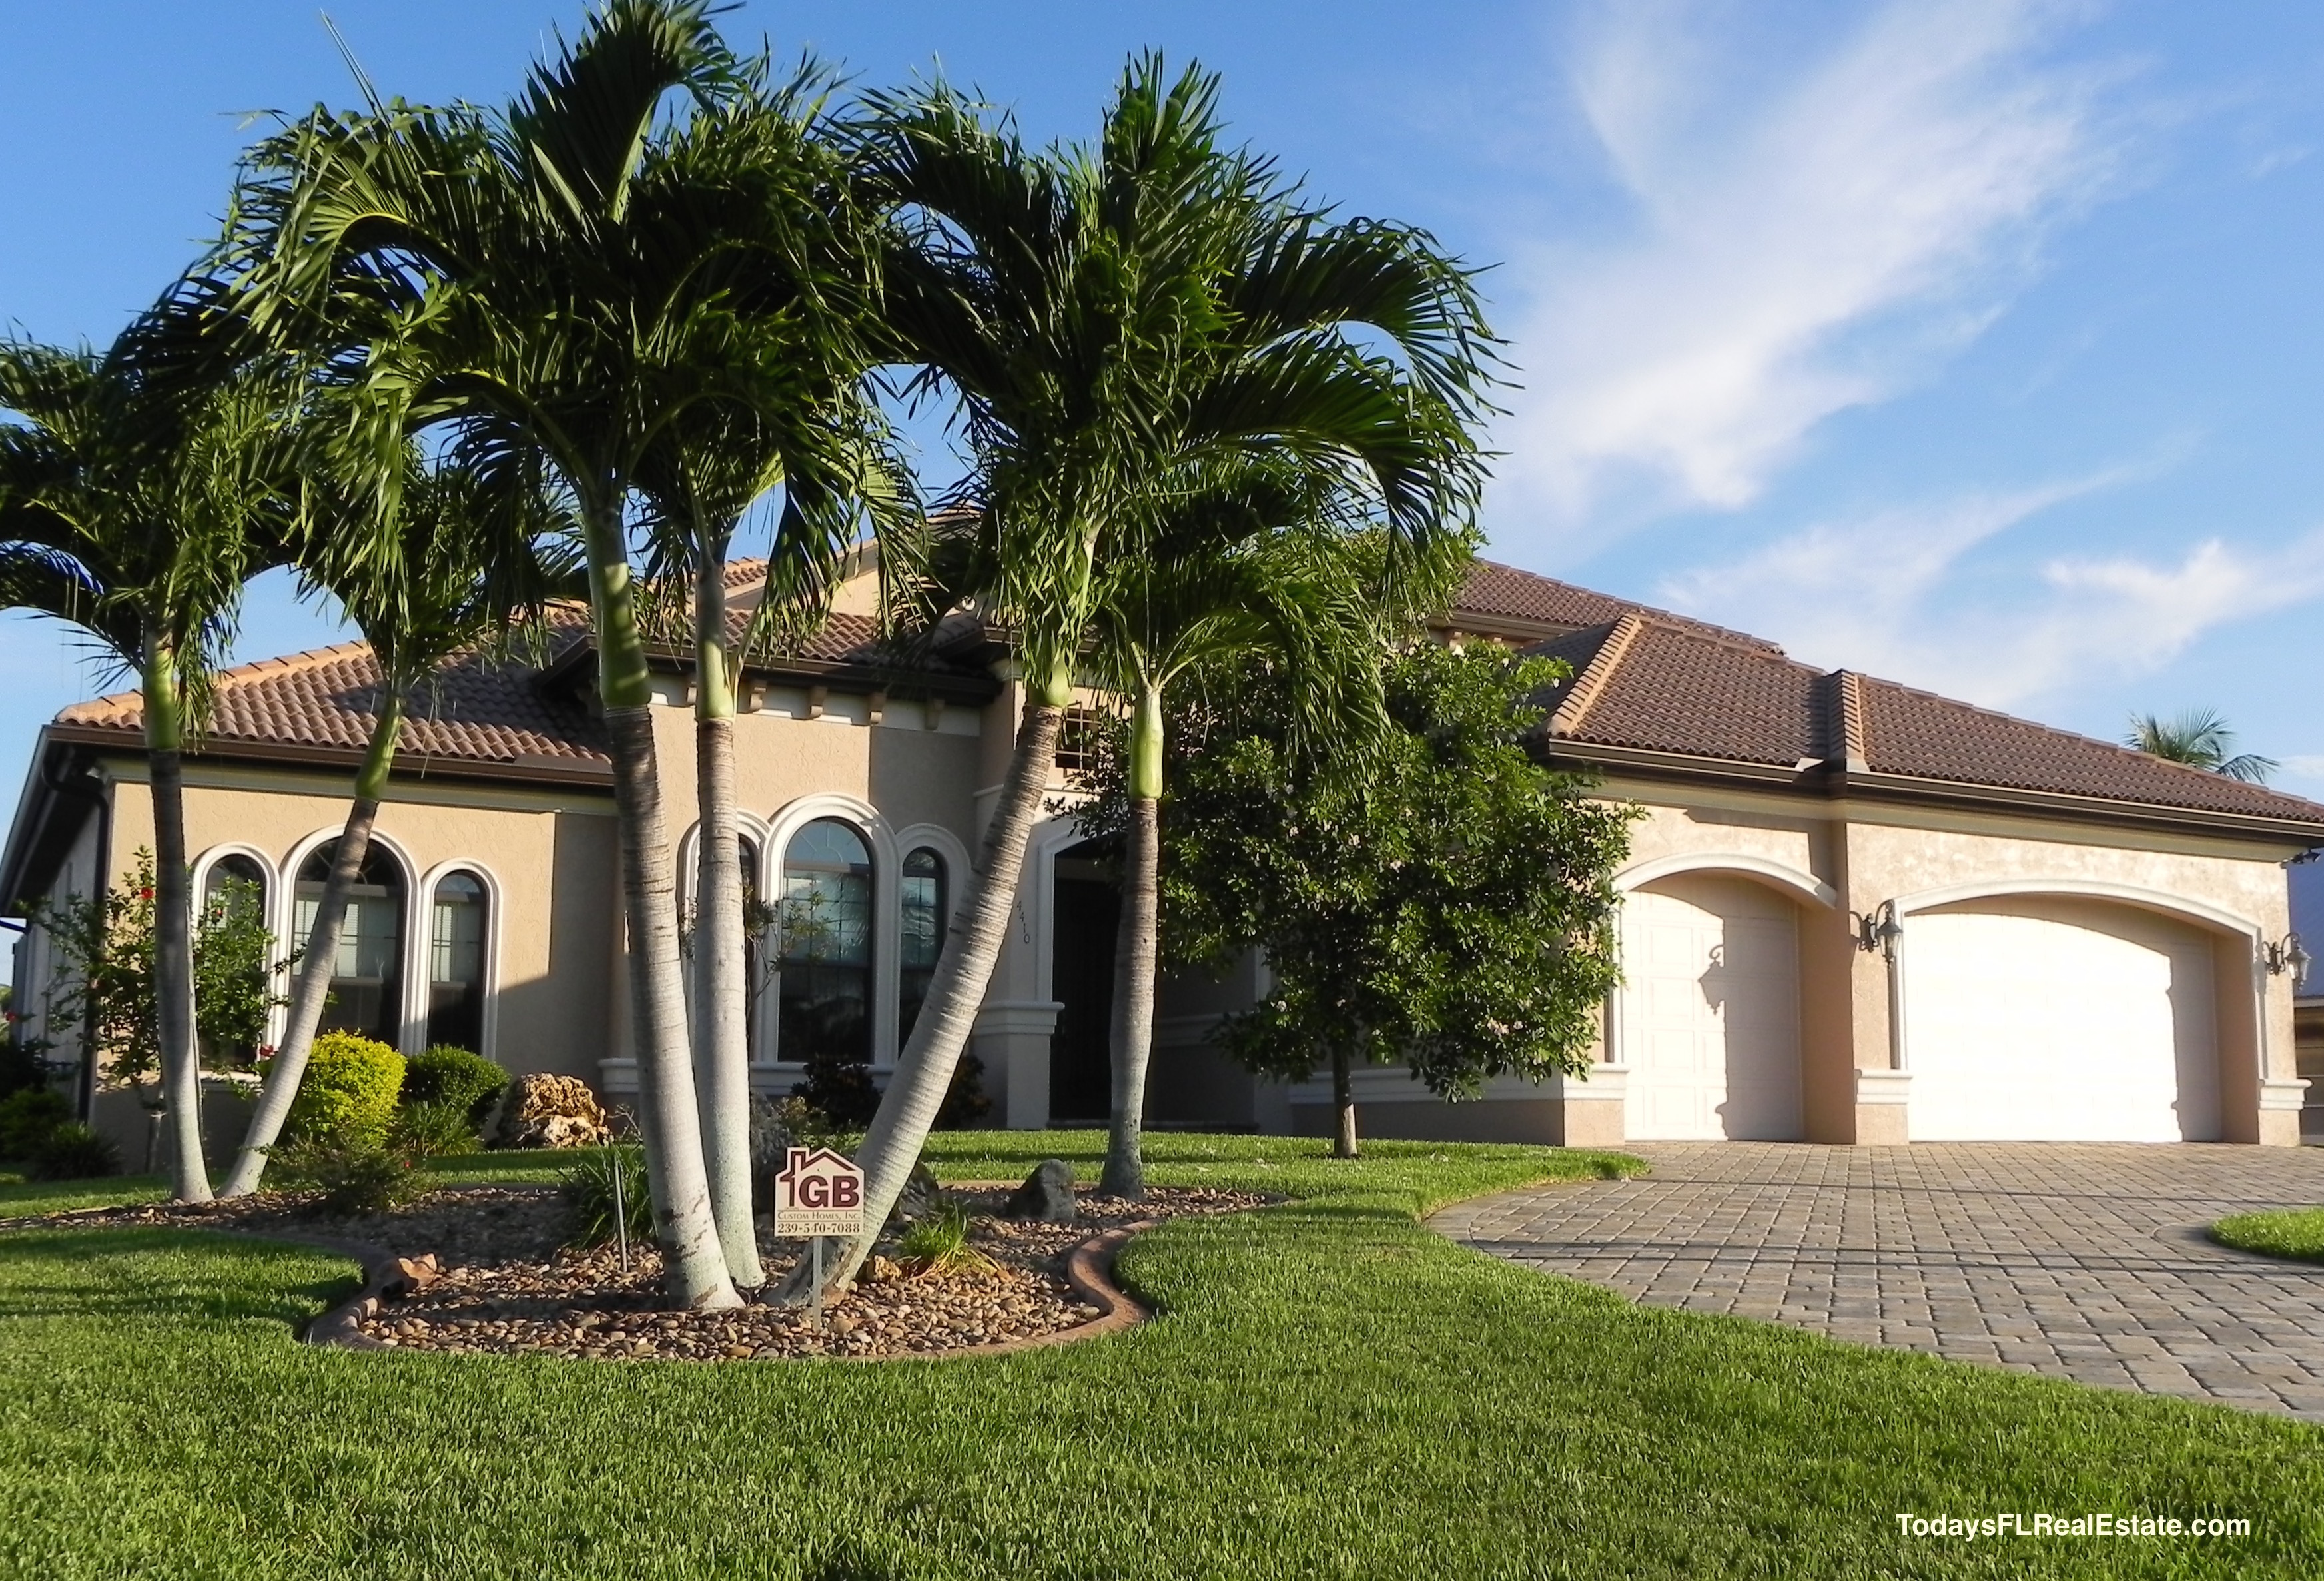 Waterfront Homes Cape Coral, Waterfront Homes Southwest Florida